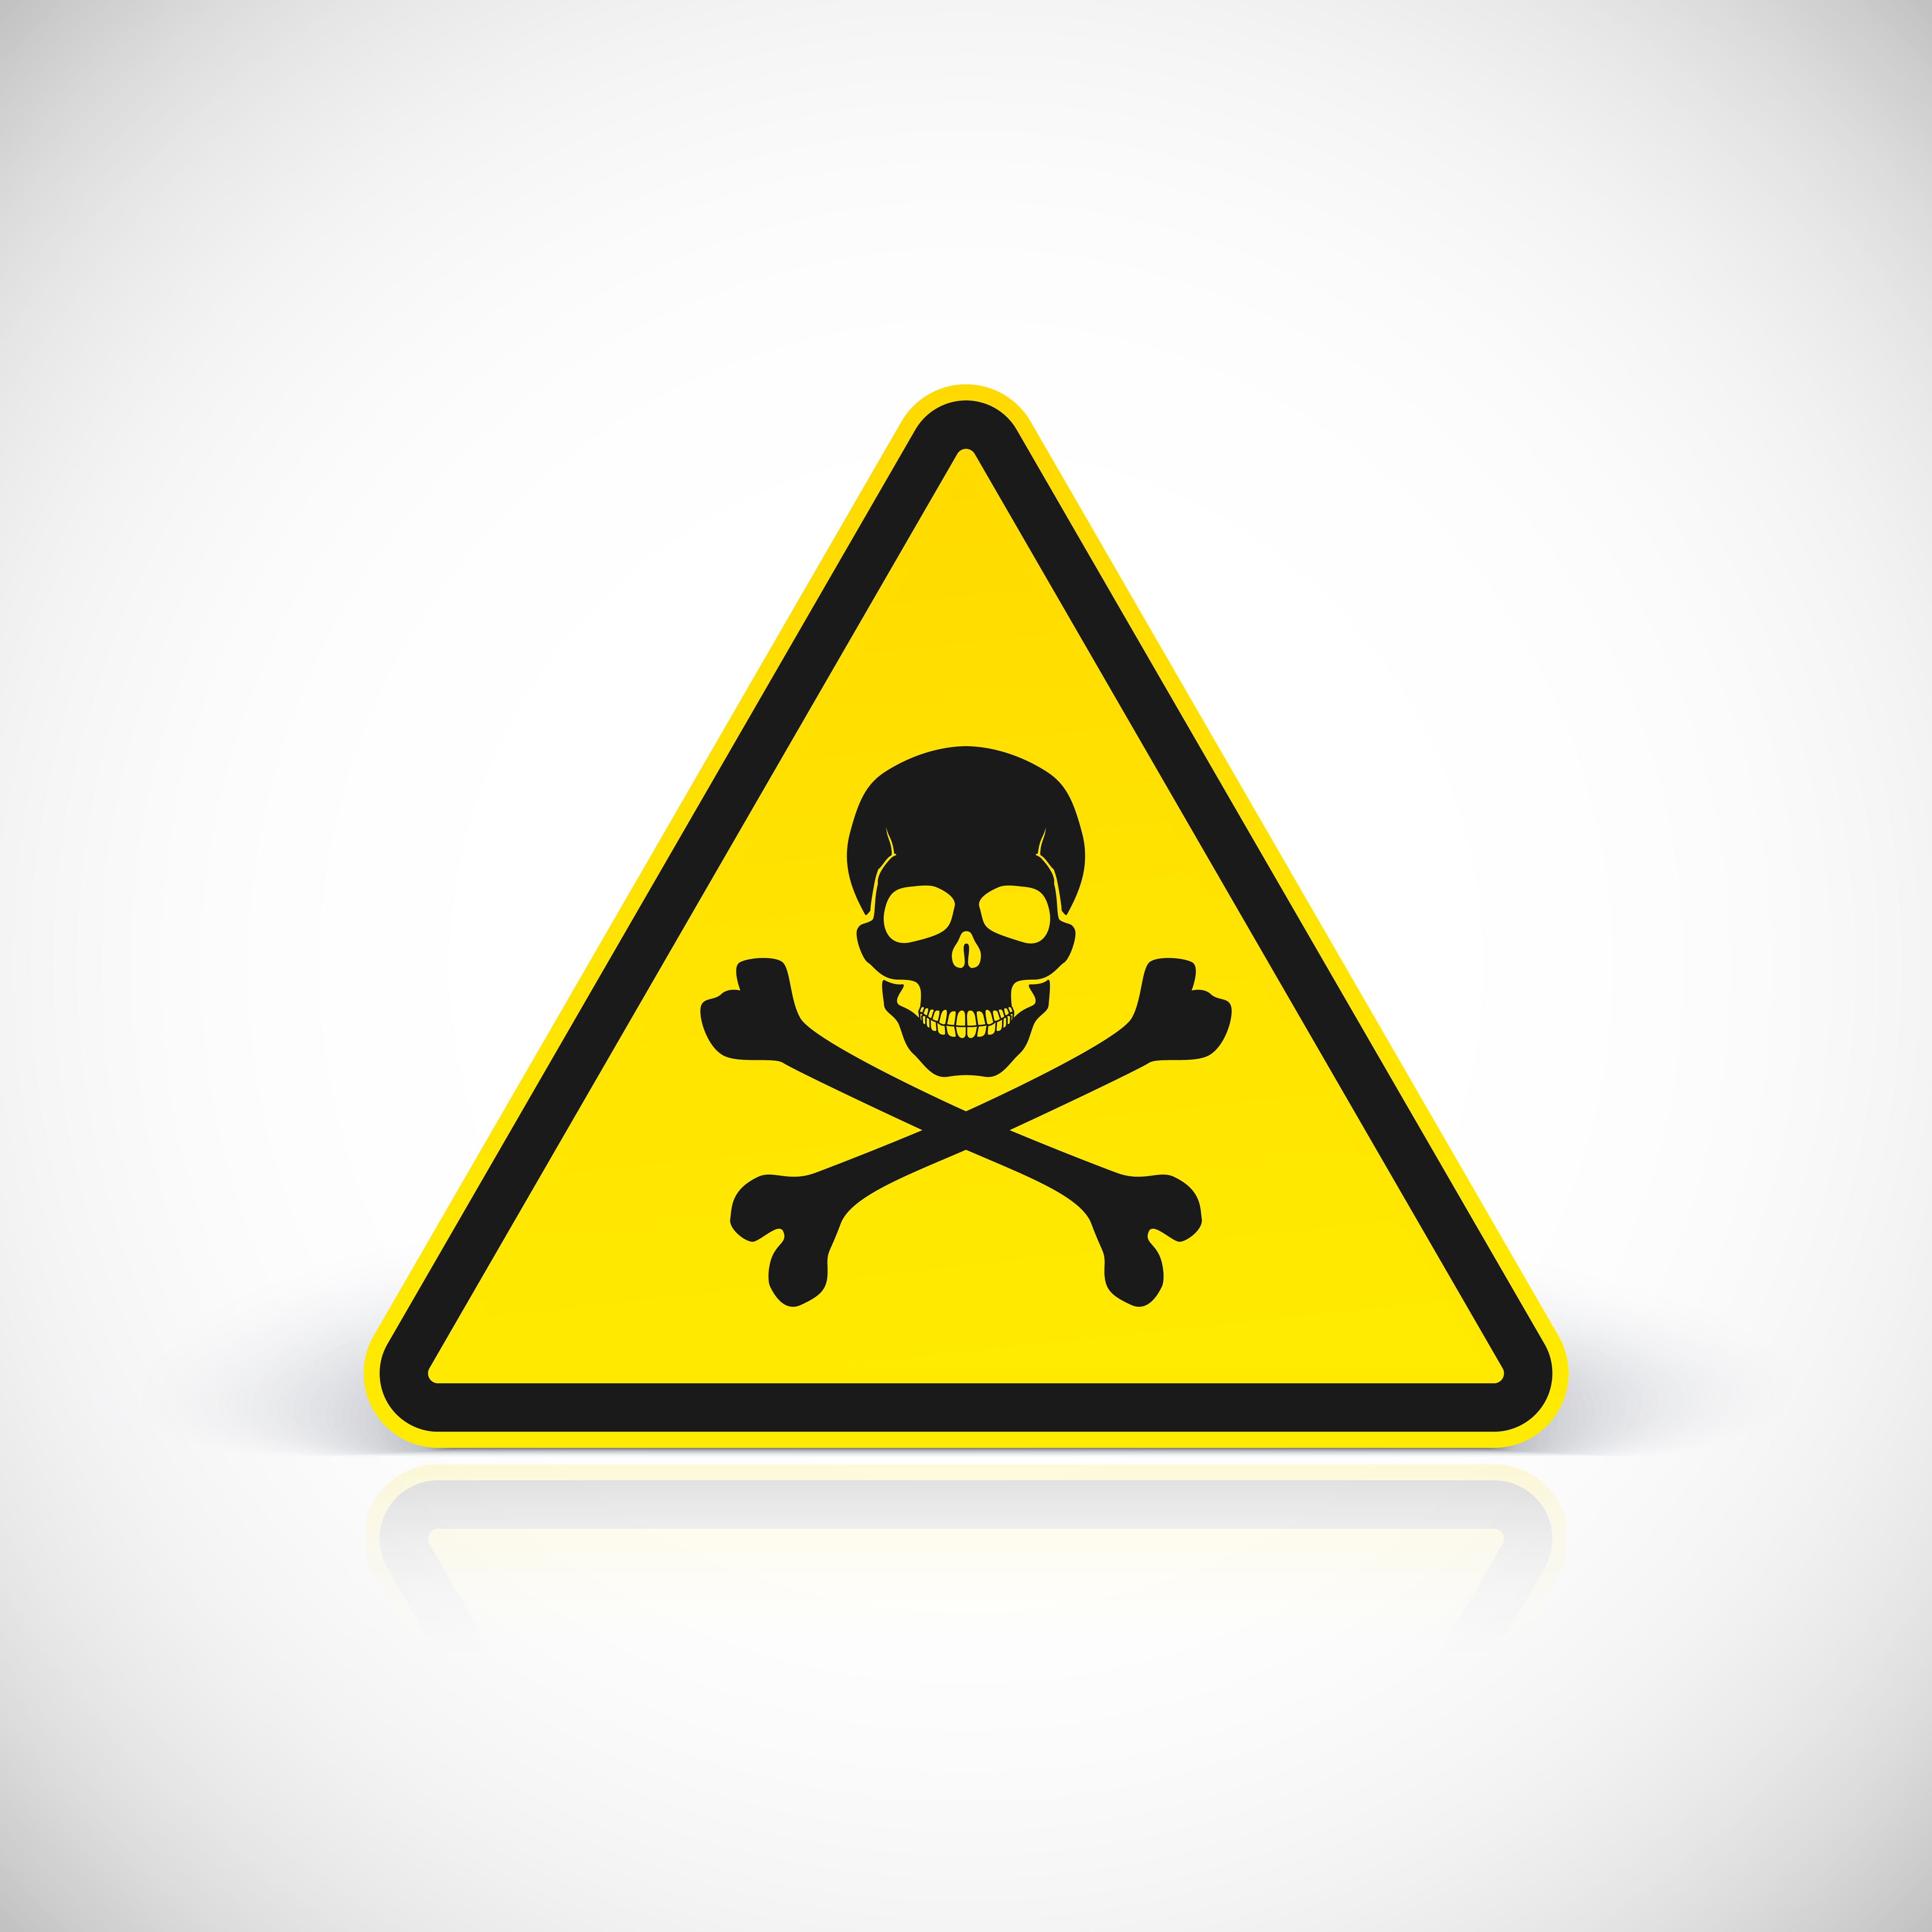 Triangular black and yellow poison warning sign with skull and crossbones.